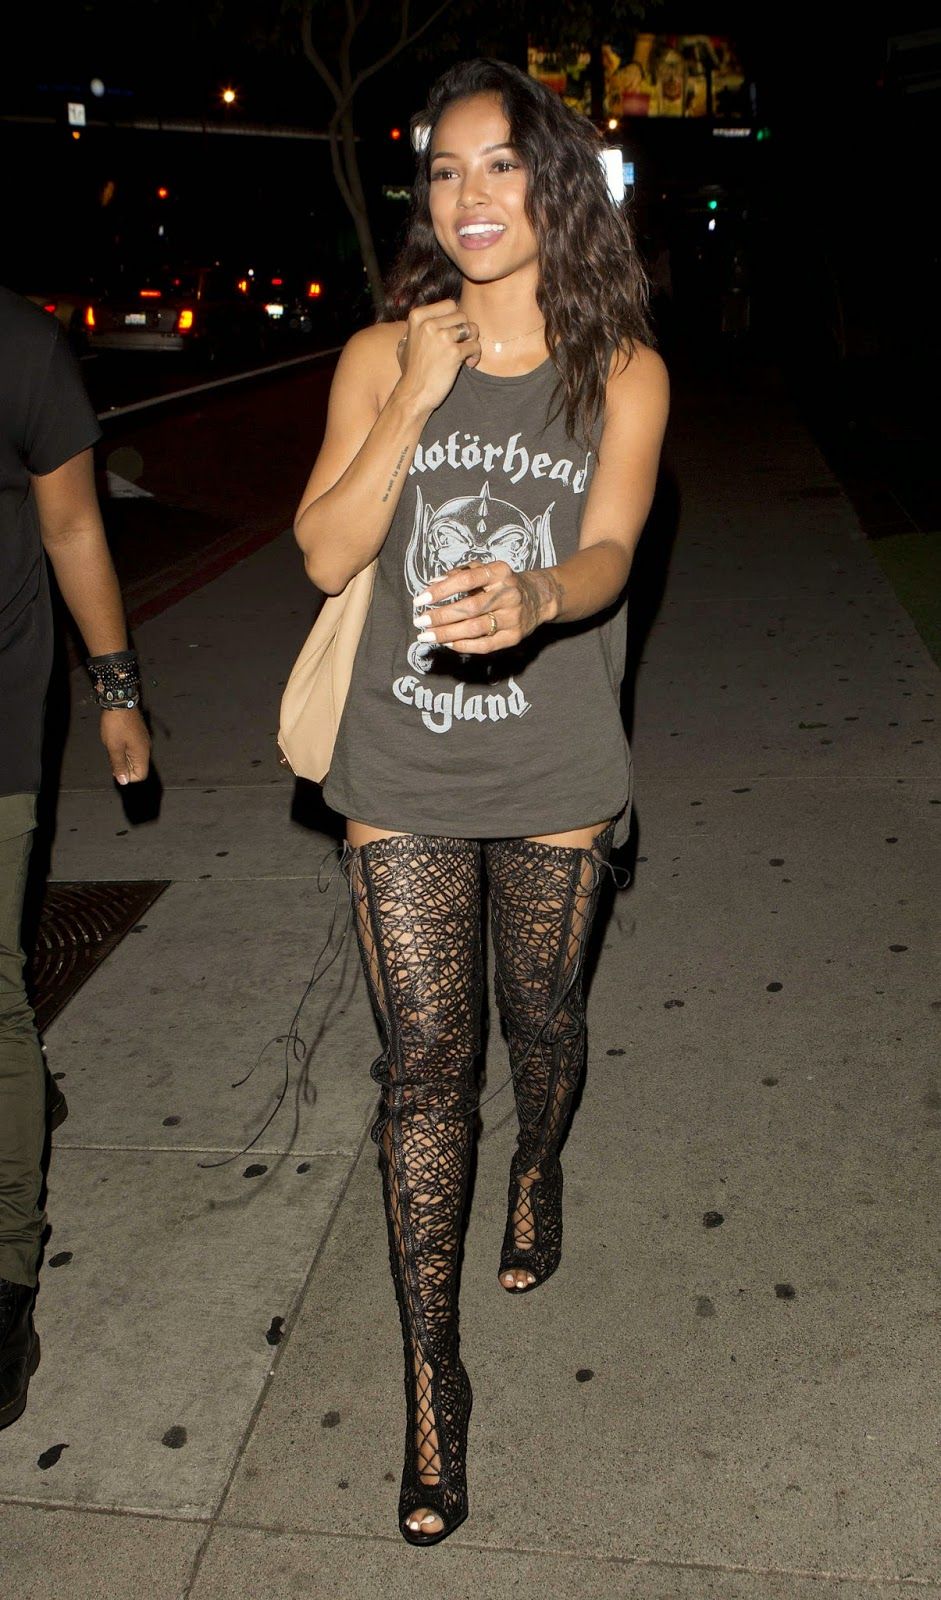 Model @ Karrueche Tran - Leaving BOA Steakhouse in West Hollywood